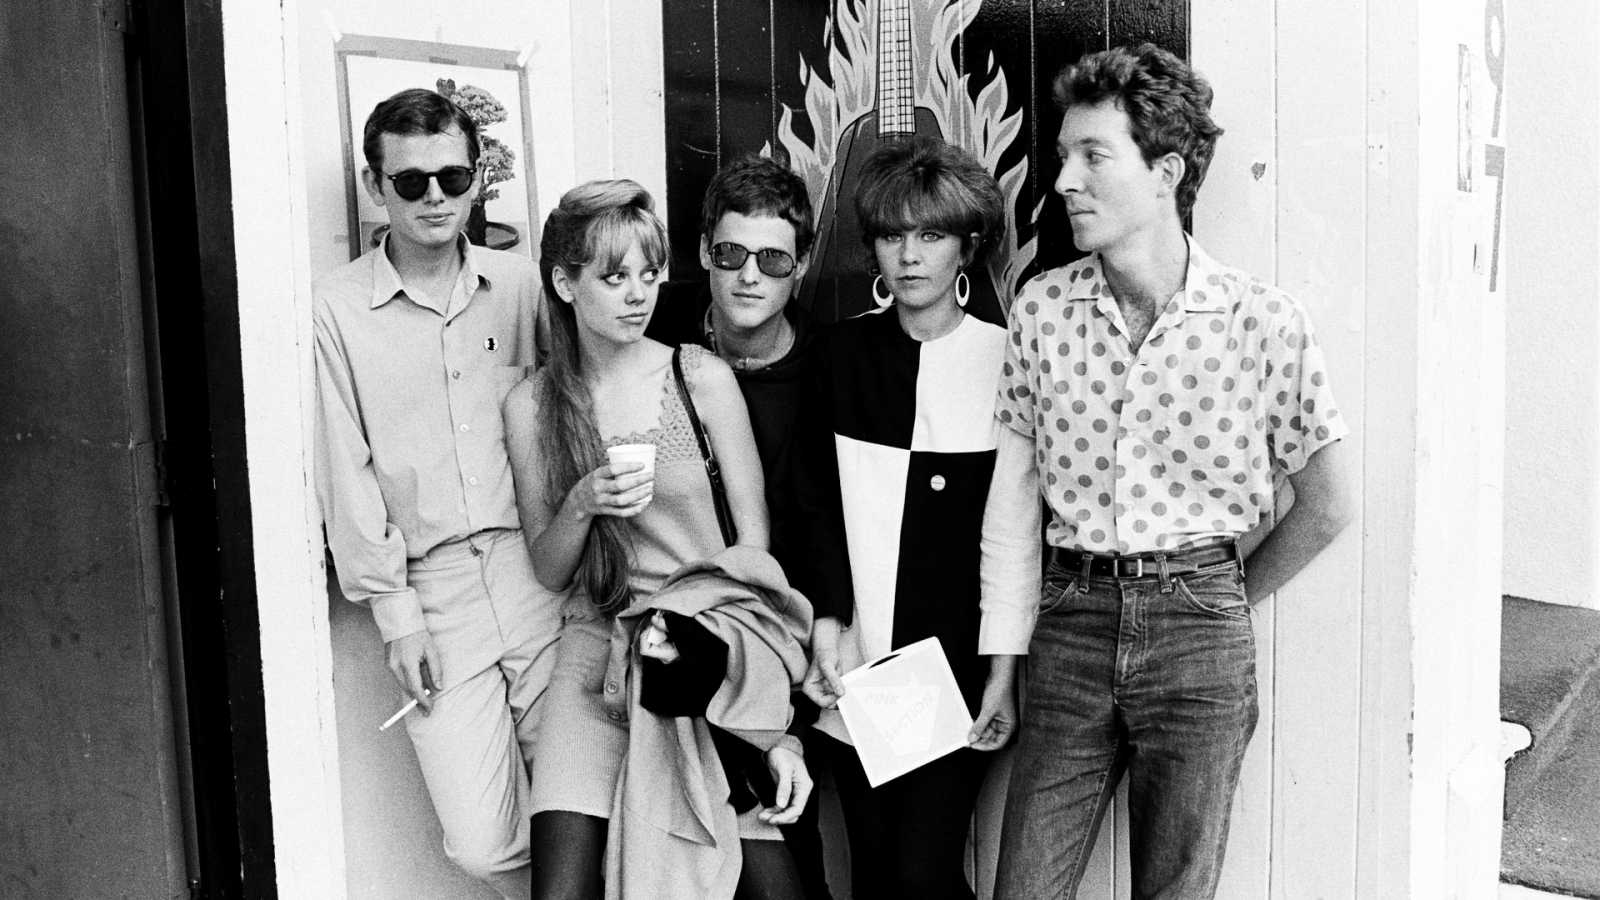 Top Gus Extra - The B-52's - 23/04/19 - Escuchar ahora